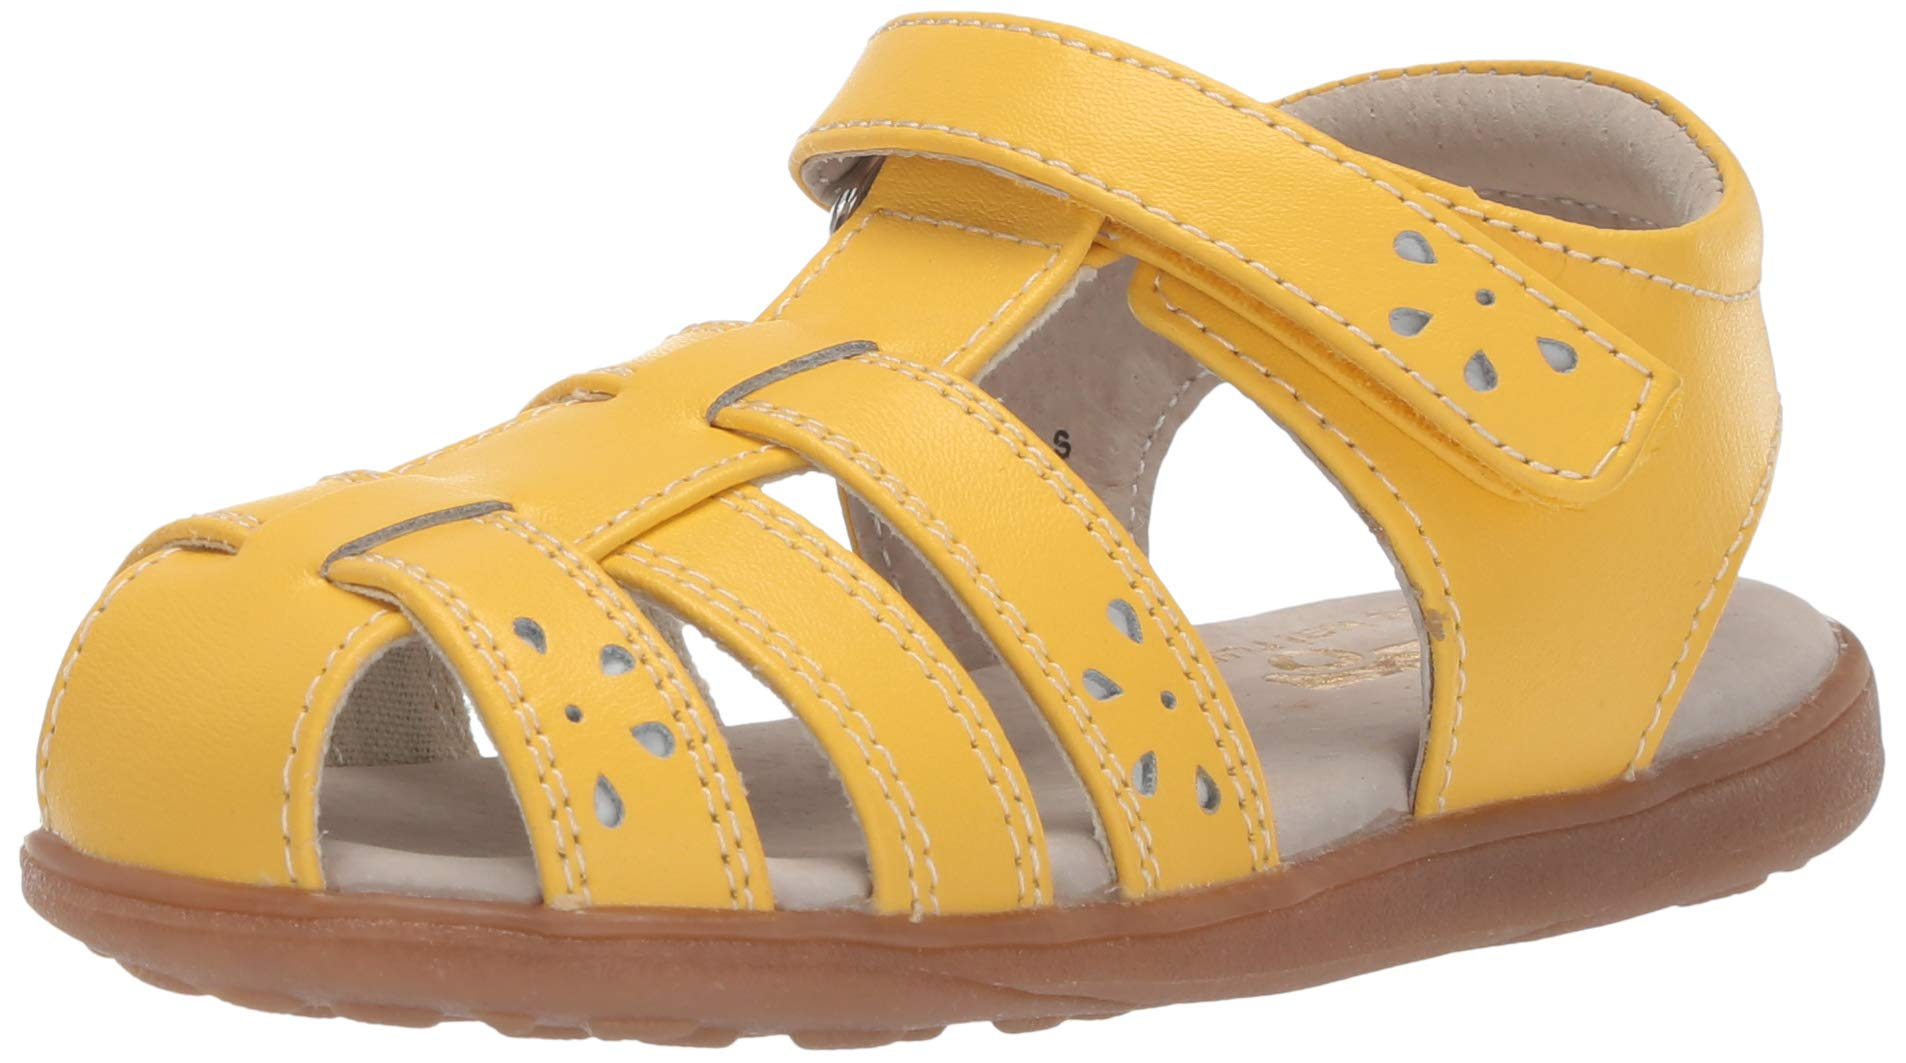 See Kai Run Girls' Gloria IV Fisherman Sandal, Yellow, 8 M US Toddler by See Kai Run